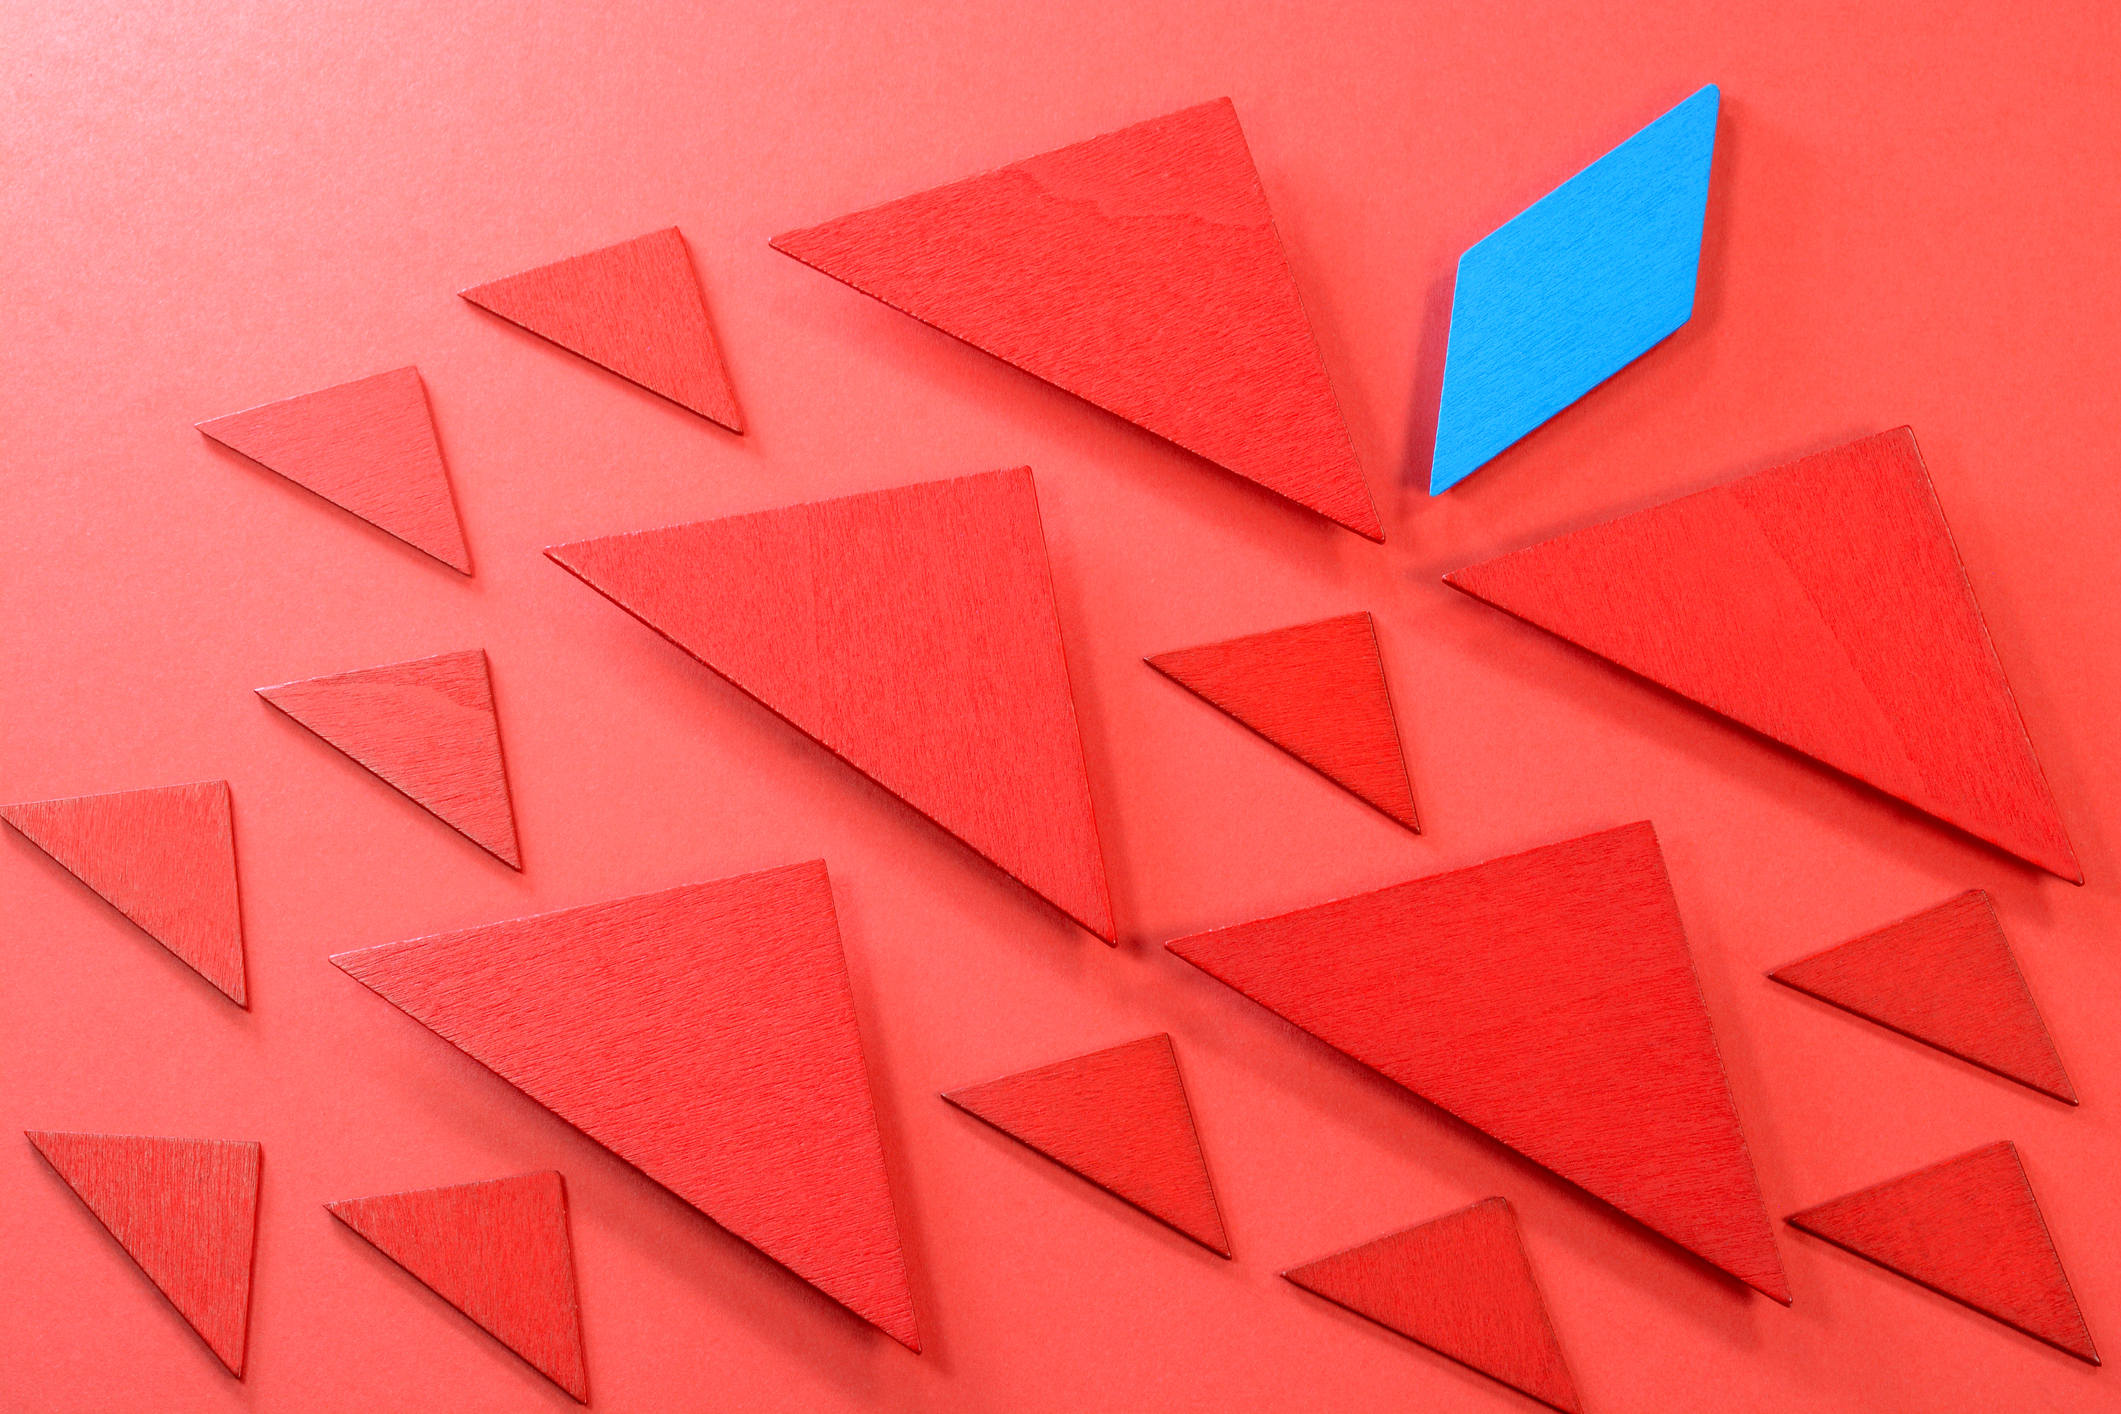 Blue rectangular wooden piece leading the other red wooden pieces